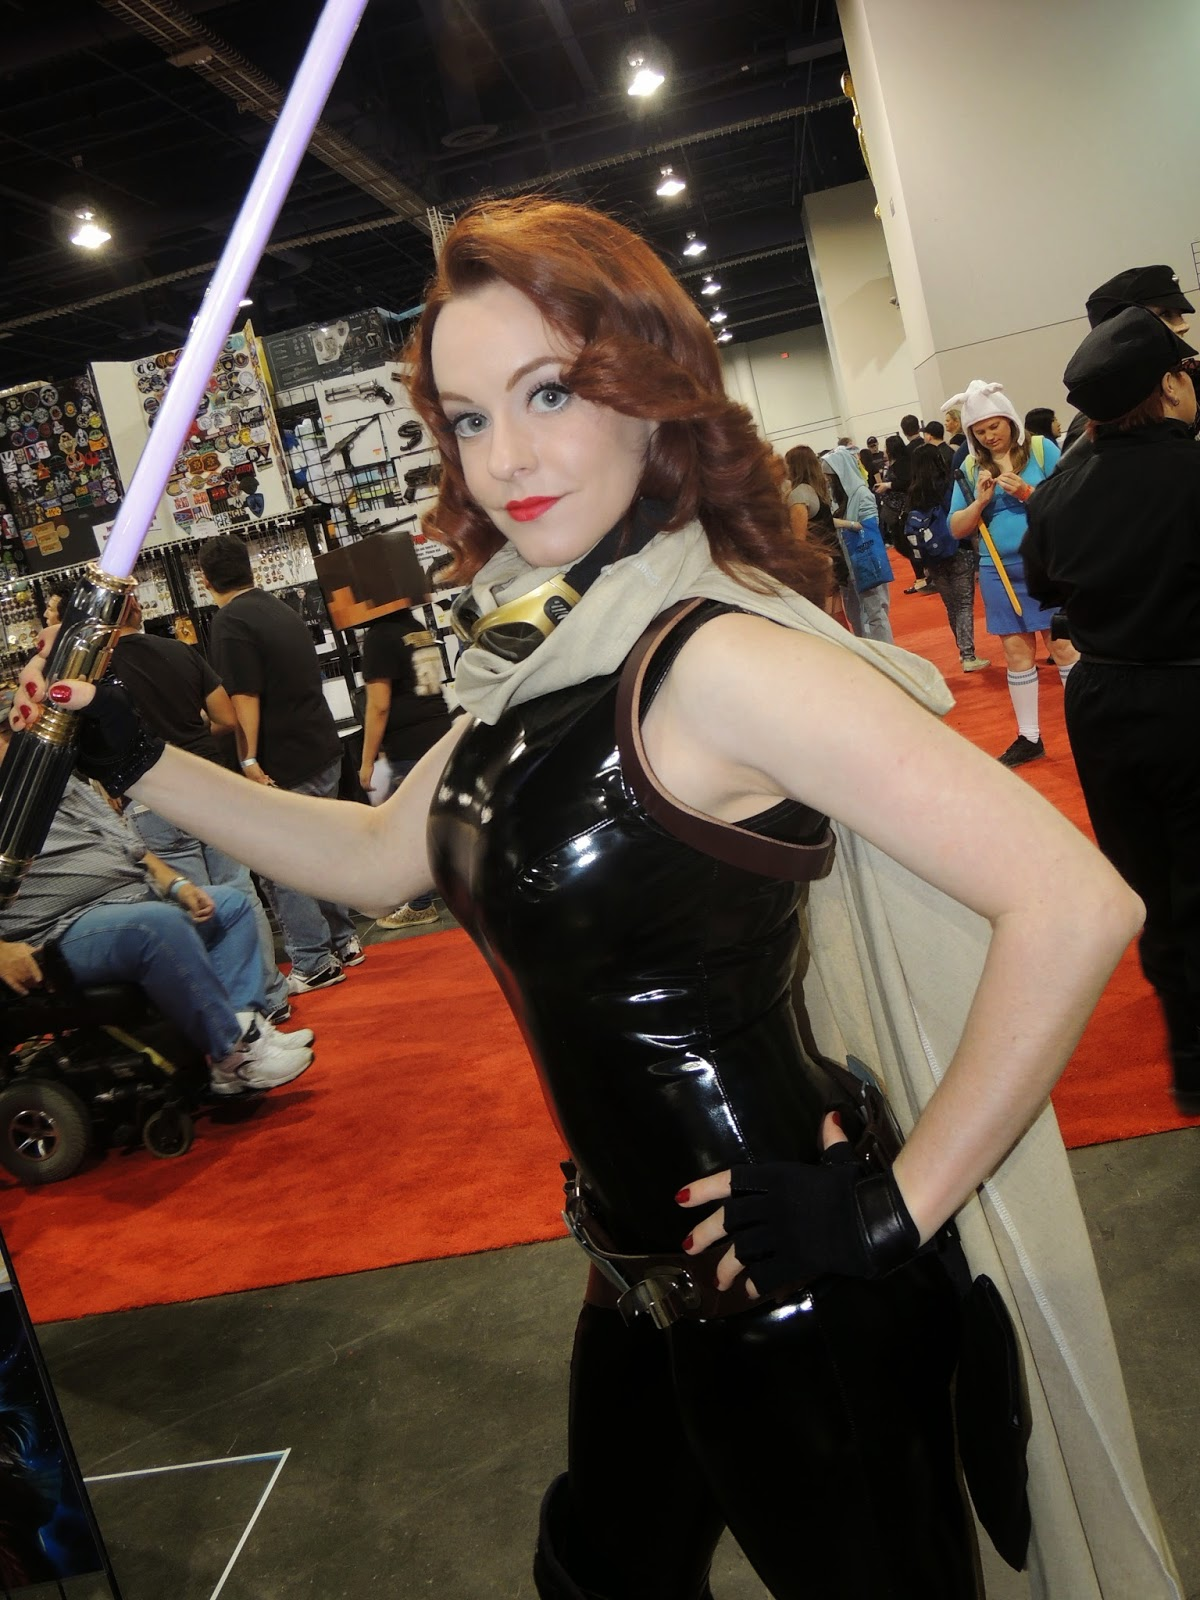 star-wars-cosplay-las-vegas-convention-center